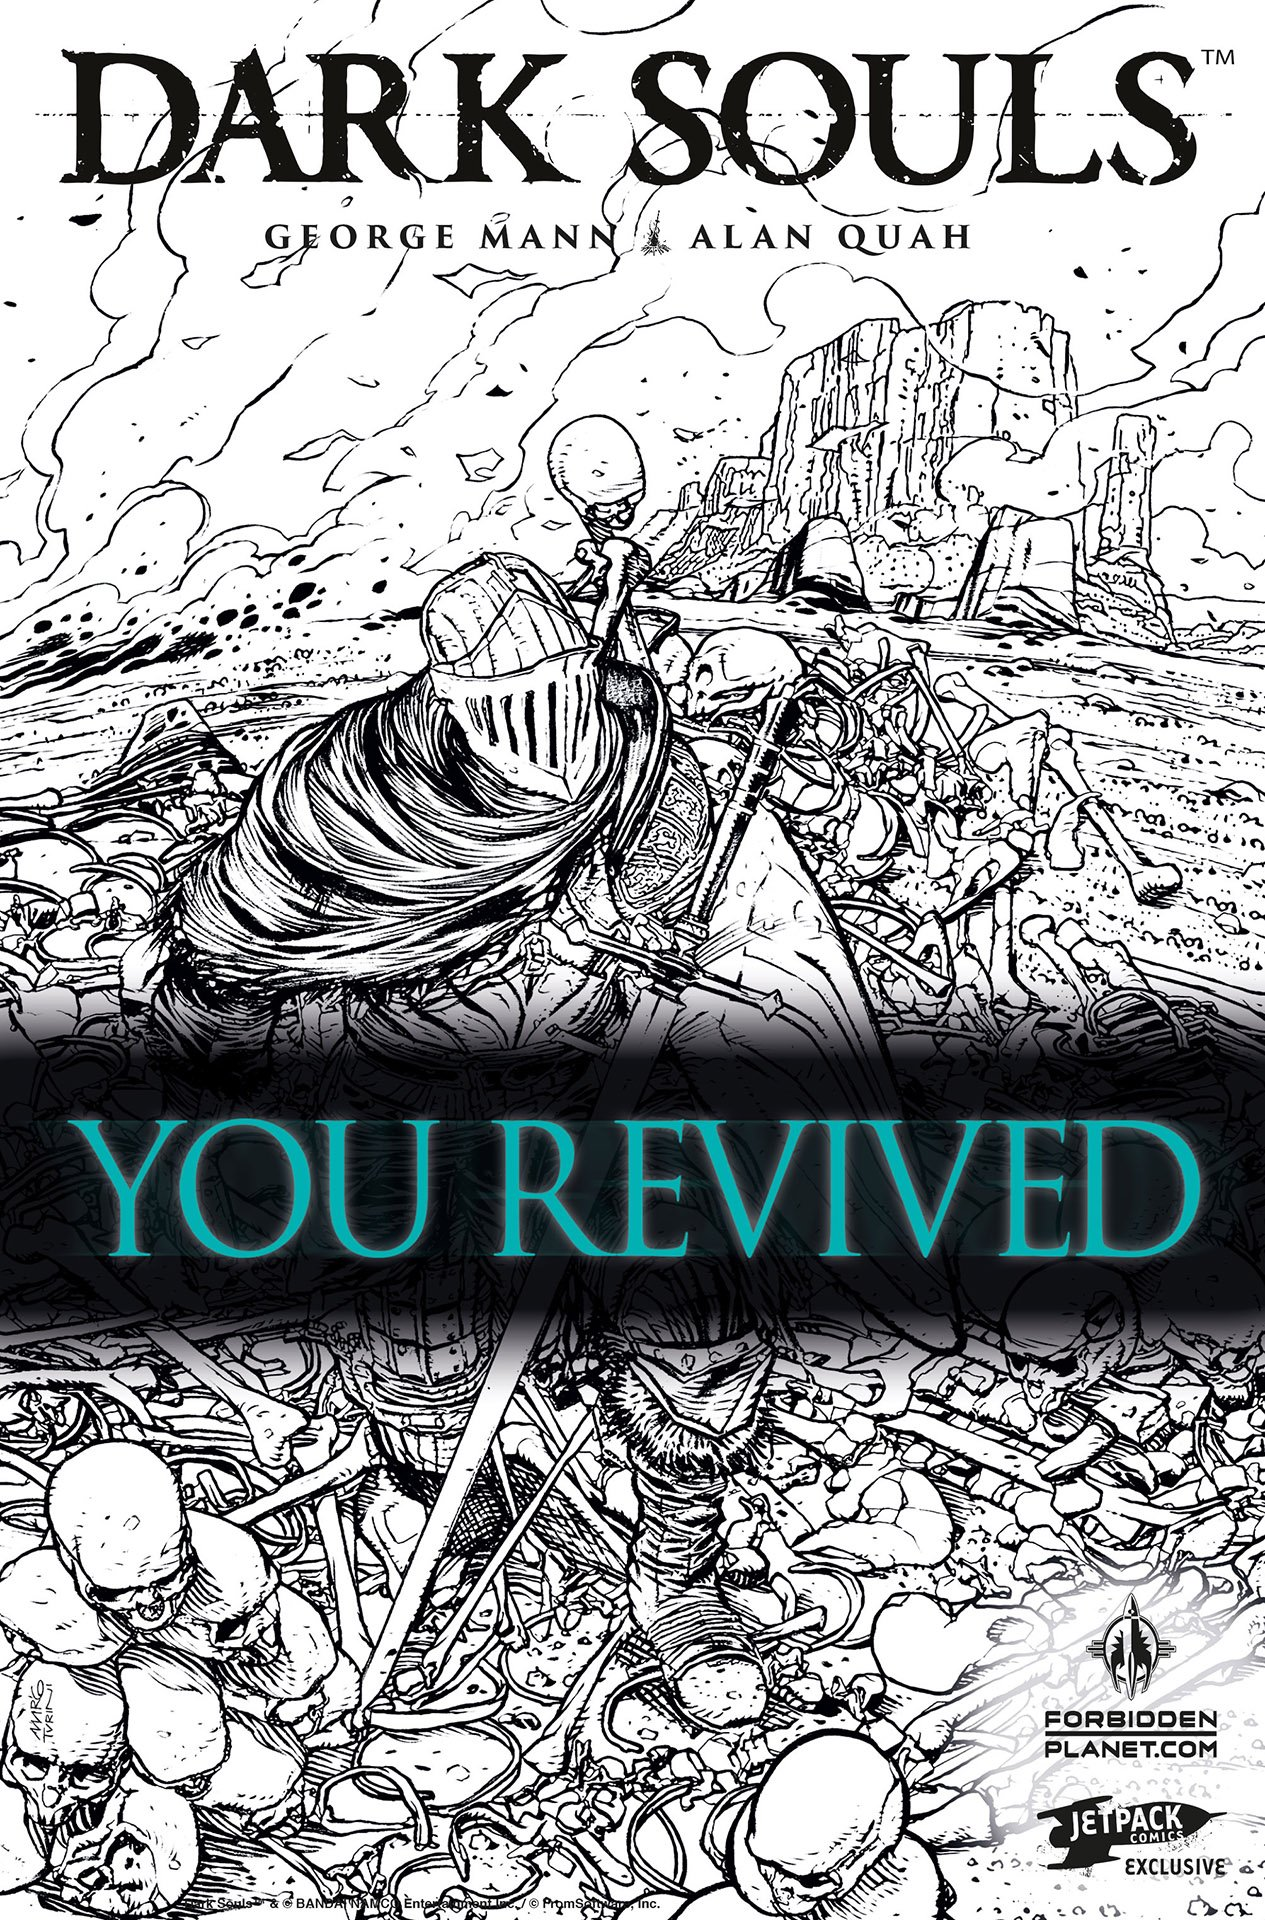 Dark Souls: The Breath of Andolus 001 (May 2016) (Forbidden Planet/Jetpack 2nd printing)